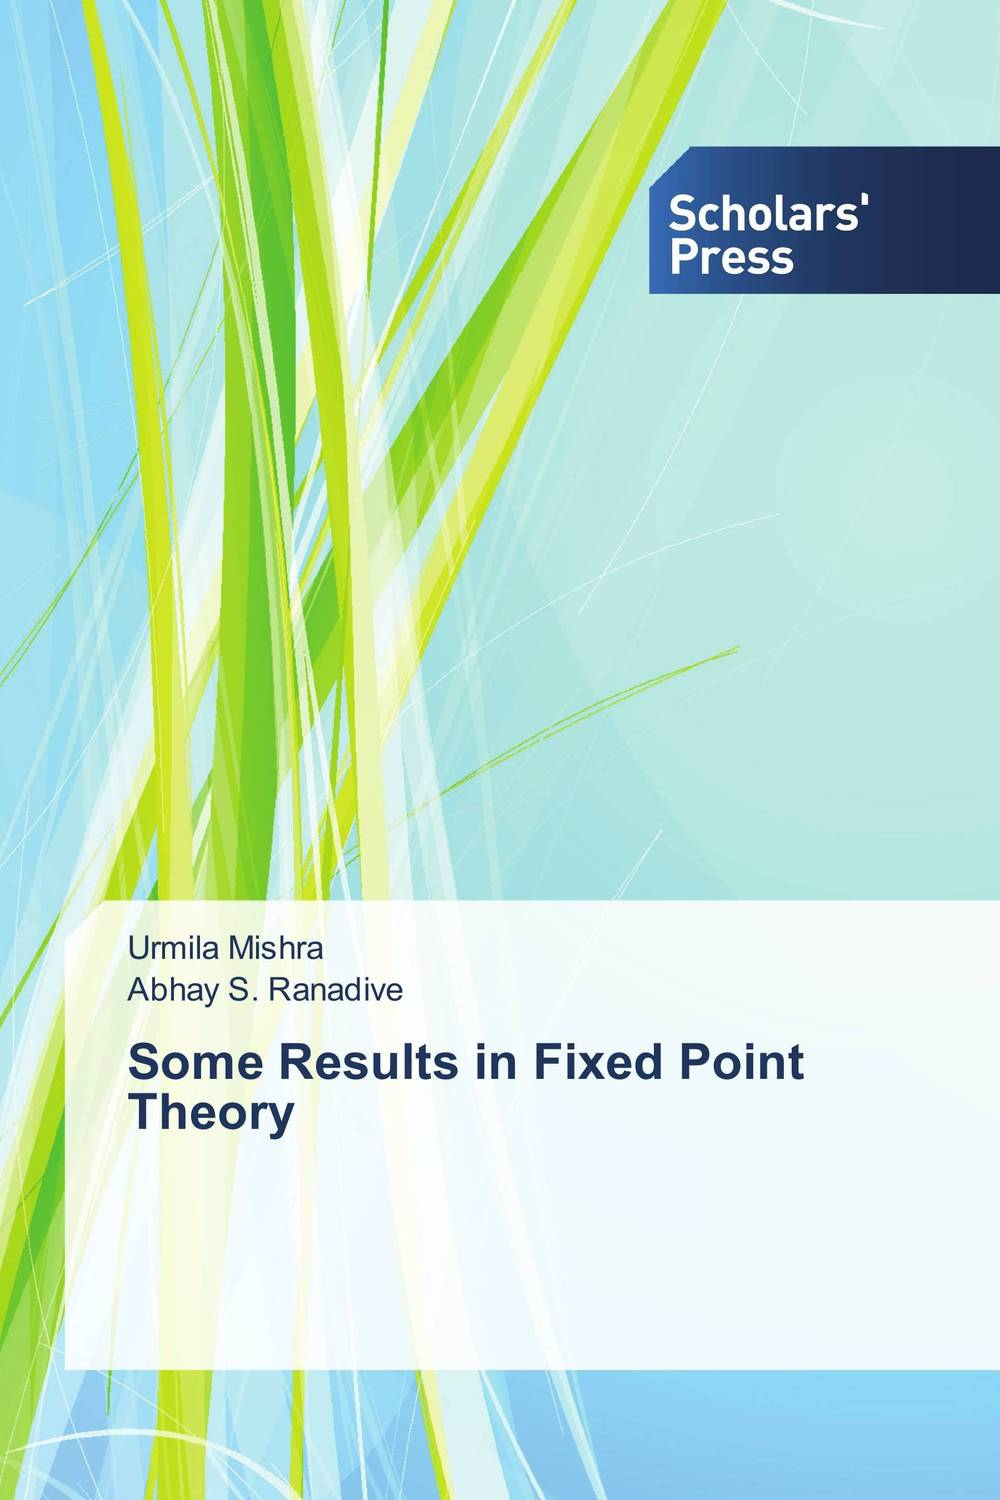 Some Results in Fixed Point Theory nirmal kumar singh and ravi prakash dubey fixed point theorems in topological spaces with application to fratal